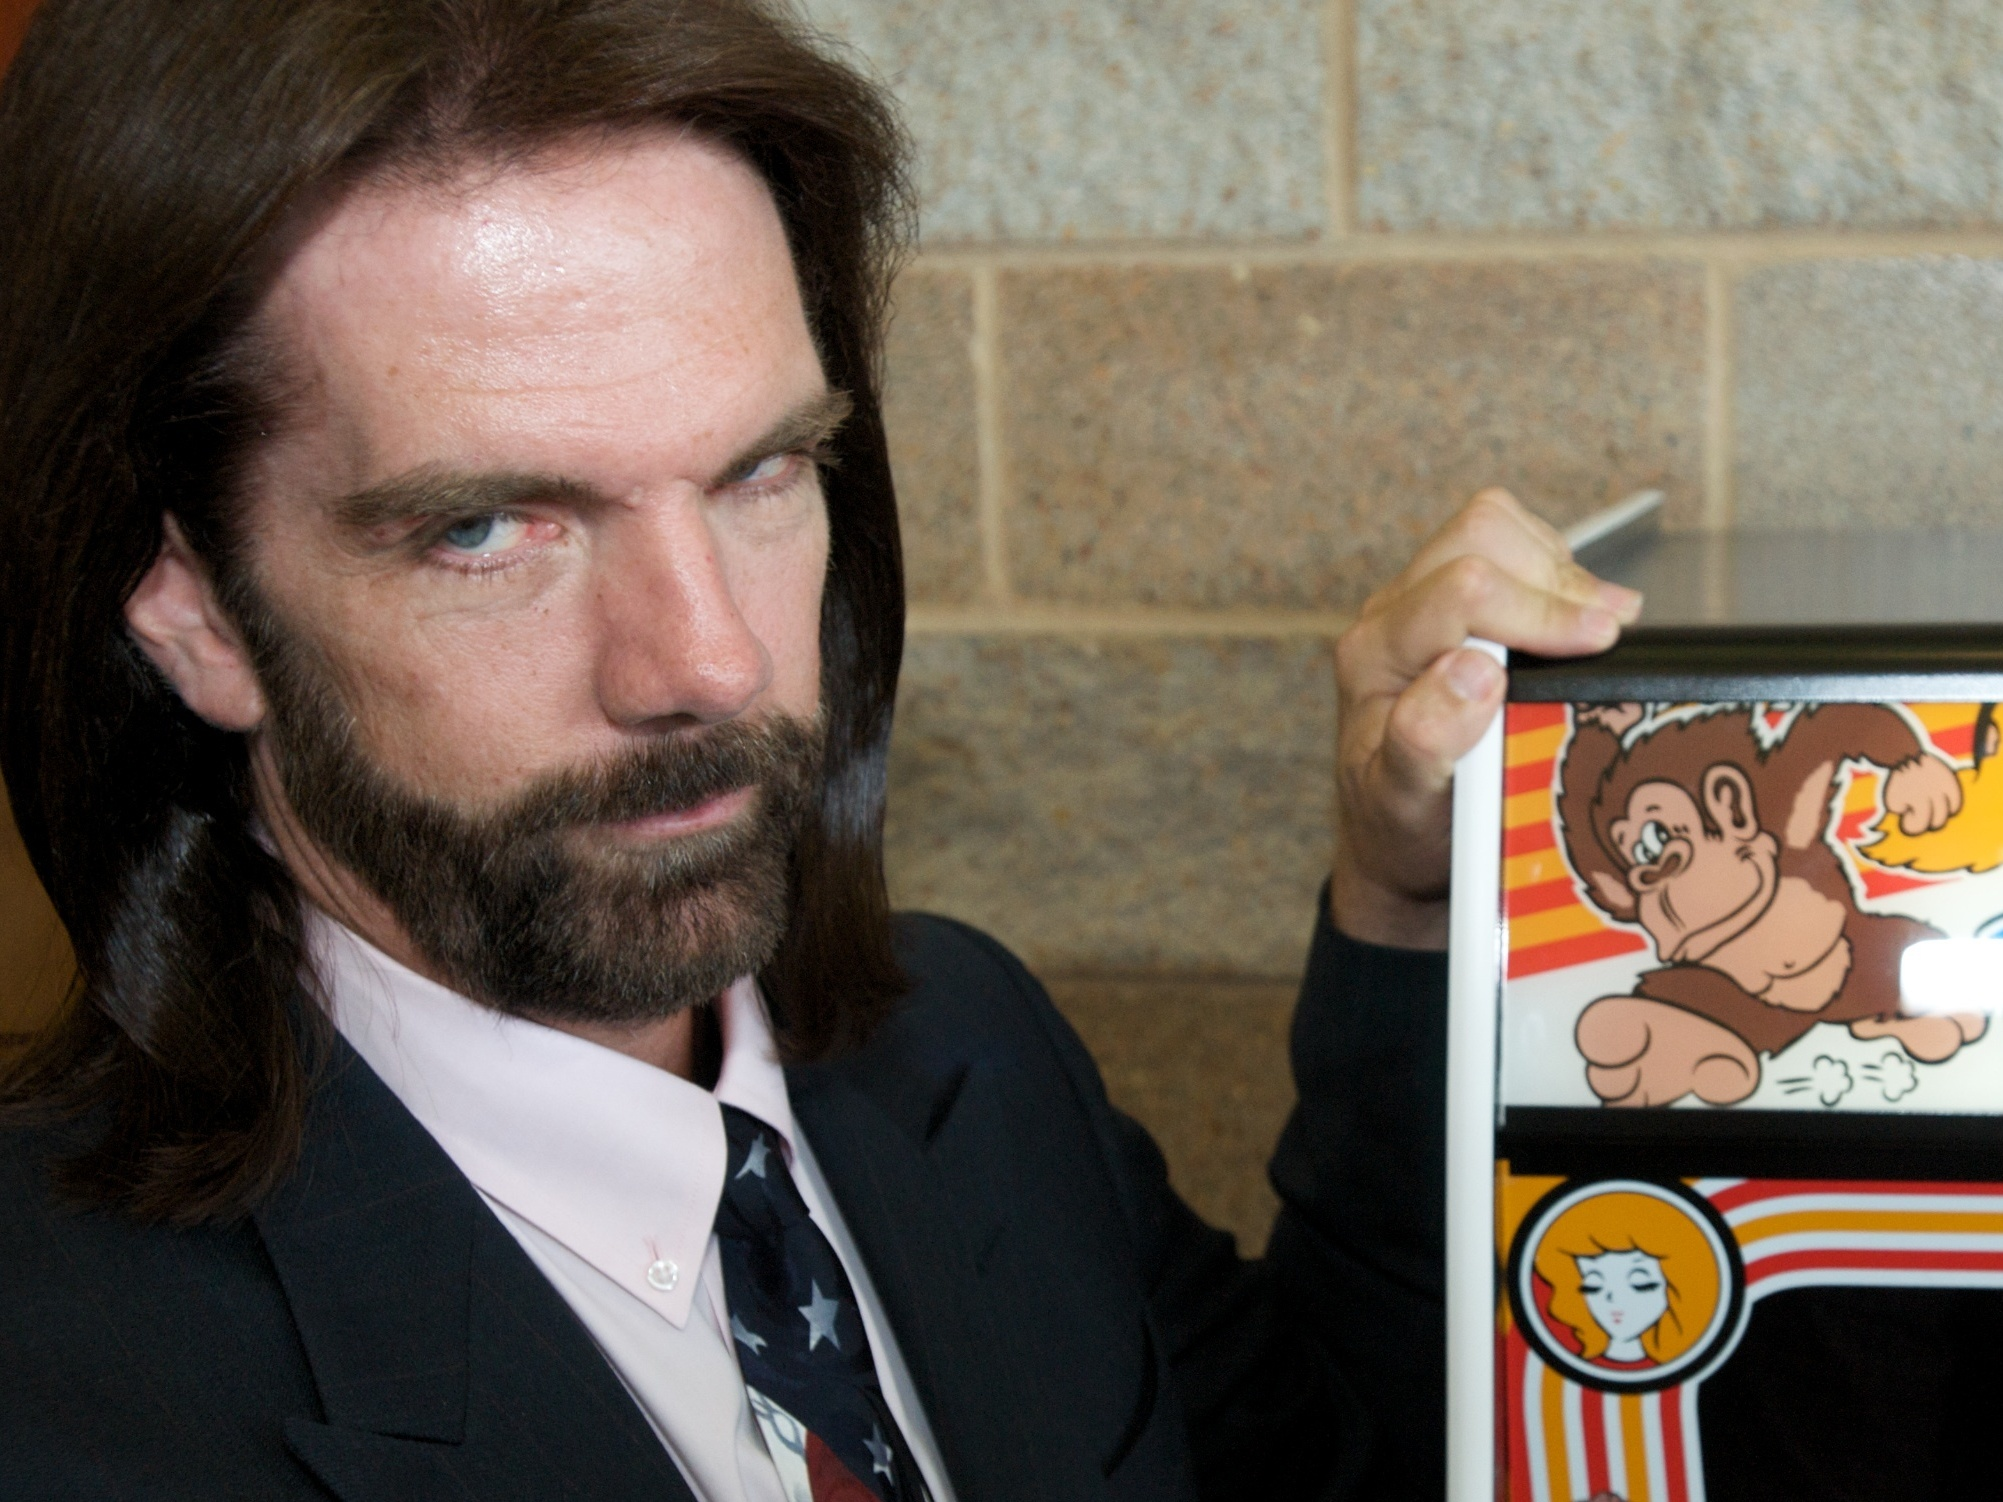 The King of Kong has been stripped of his title for cheating